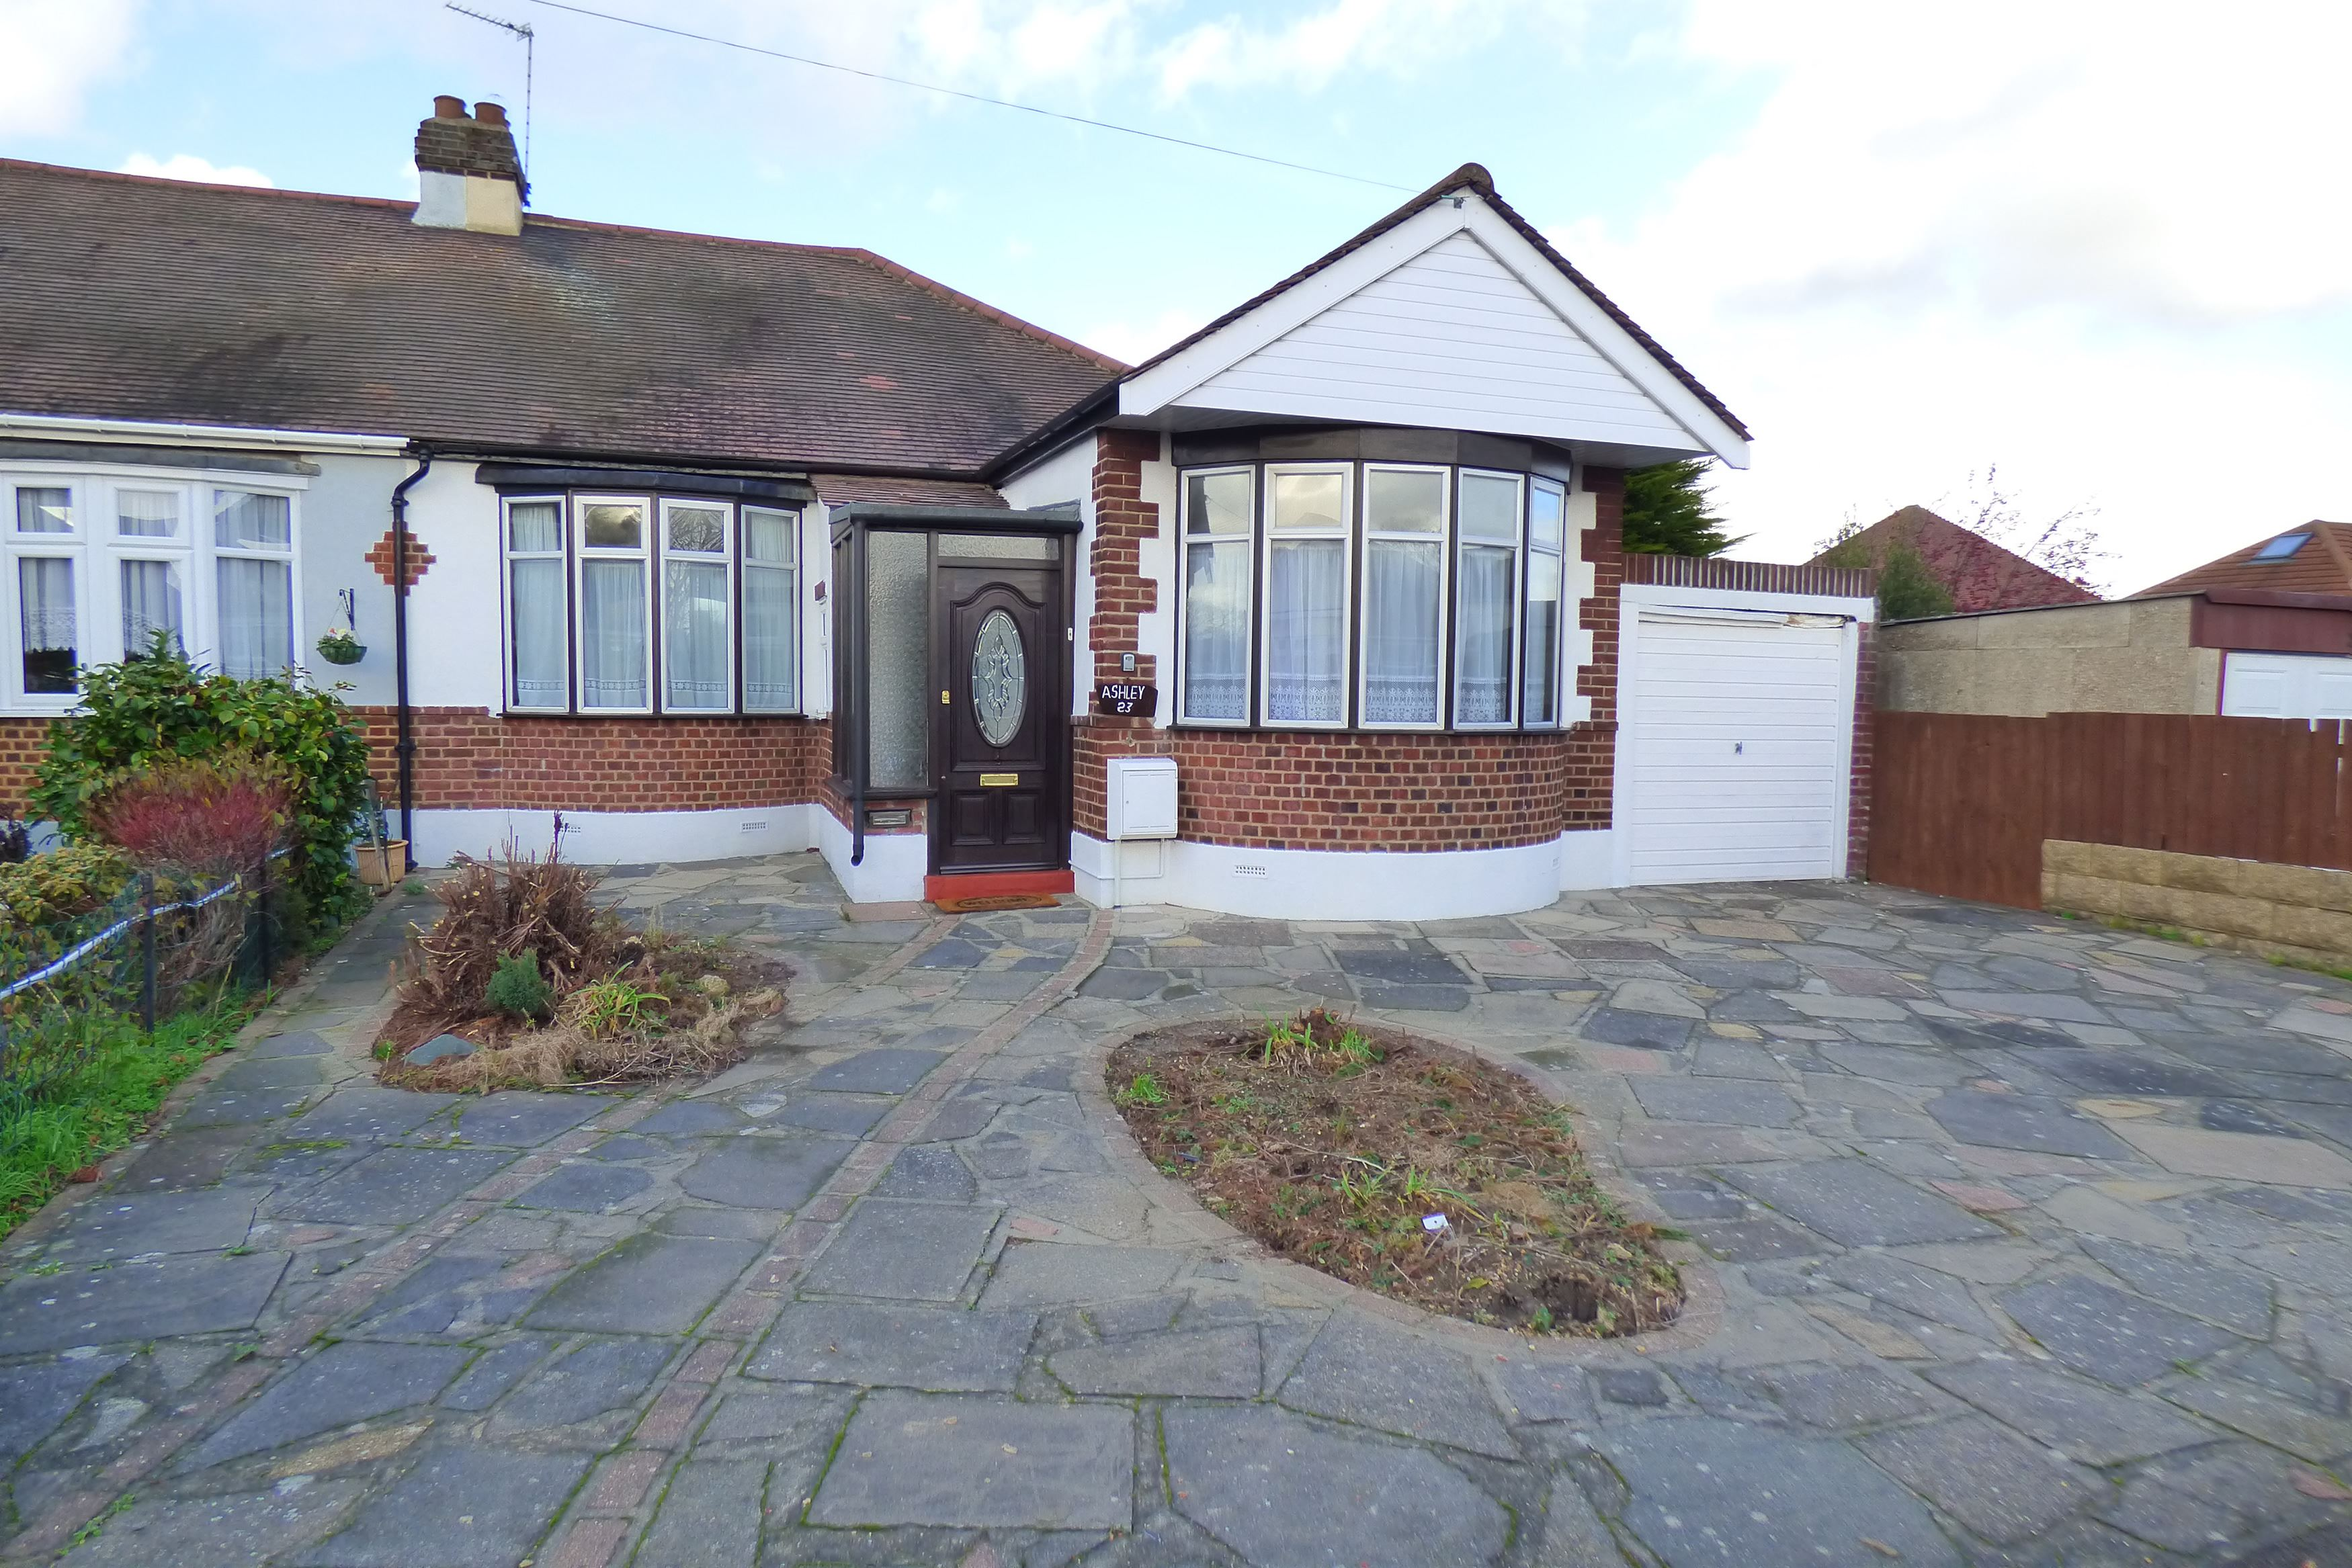 2 bedroom bungalow for sale upland court road romford for 2 bedroom bungalow